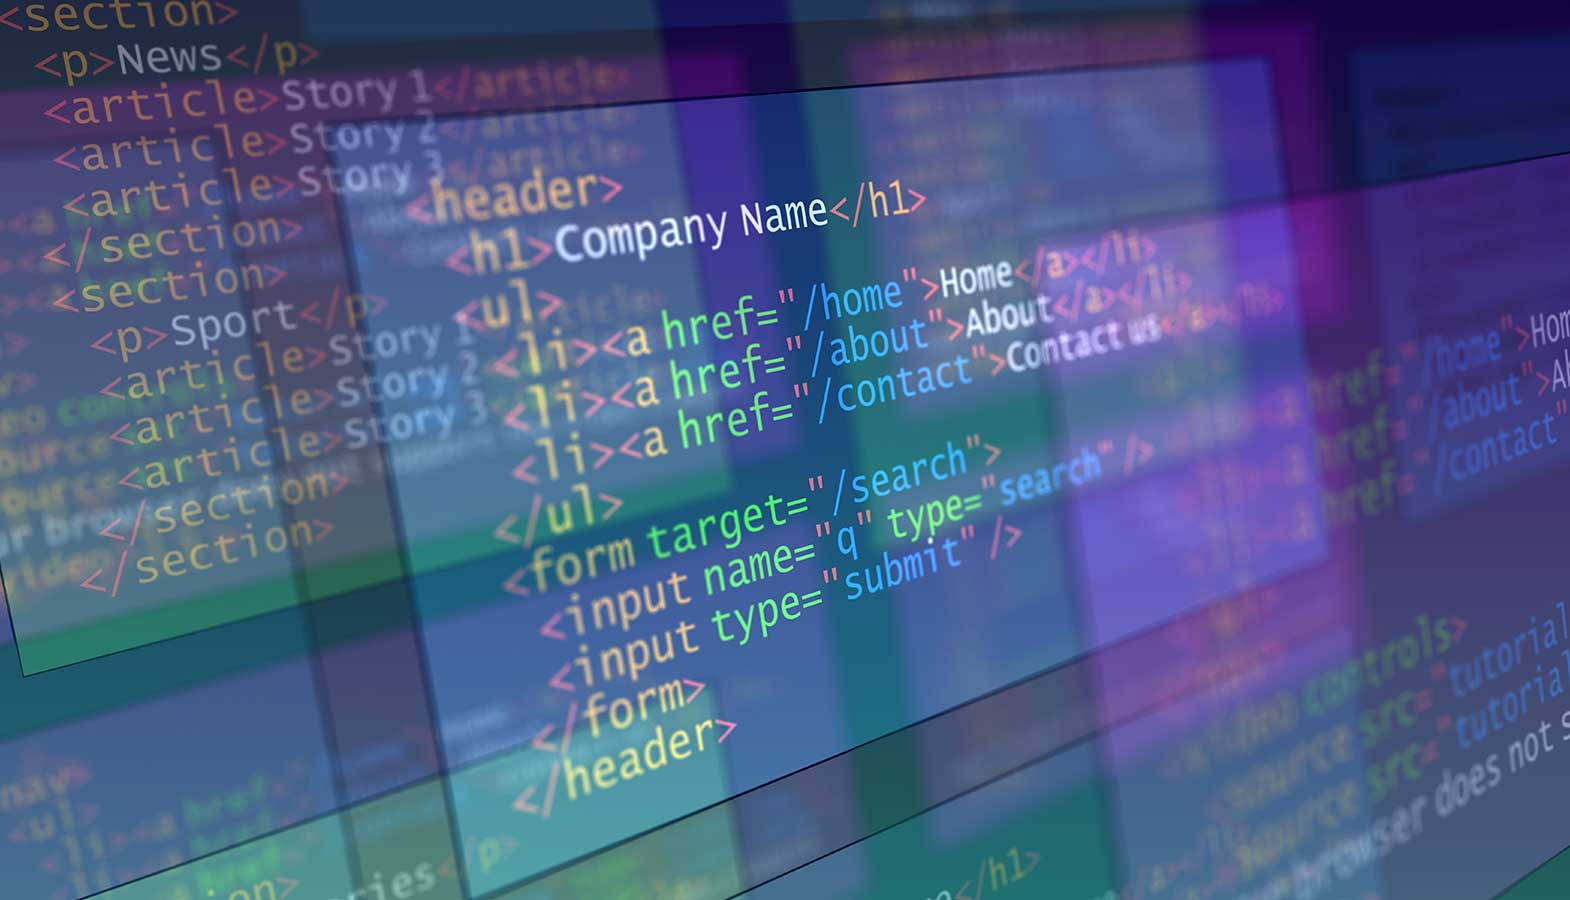 WordPress offers open source code that is more friendly than Webflow